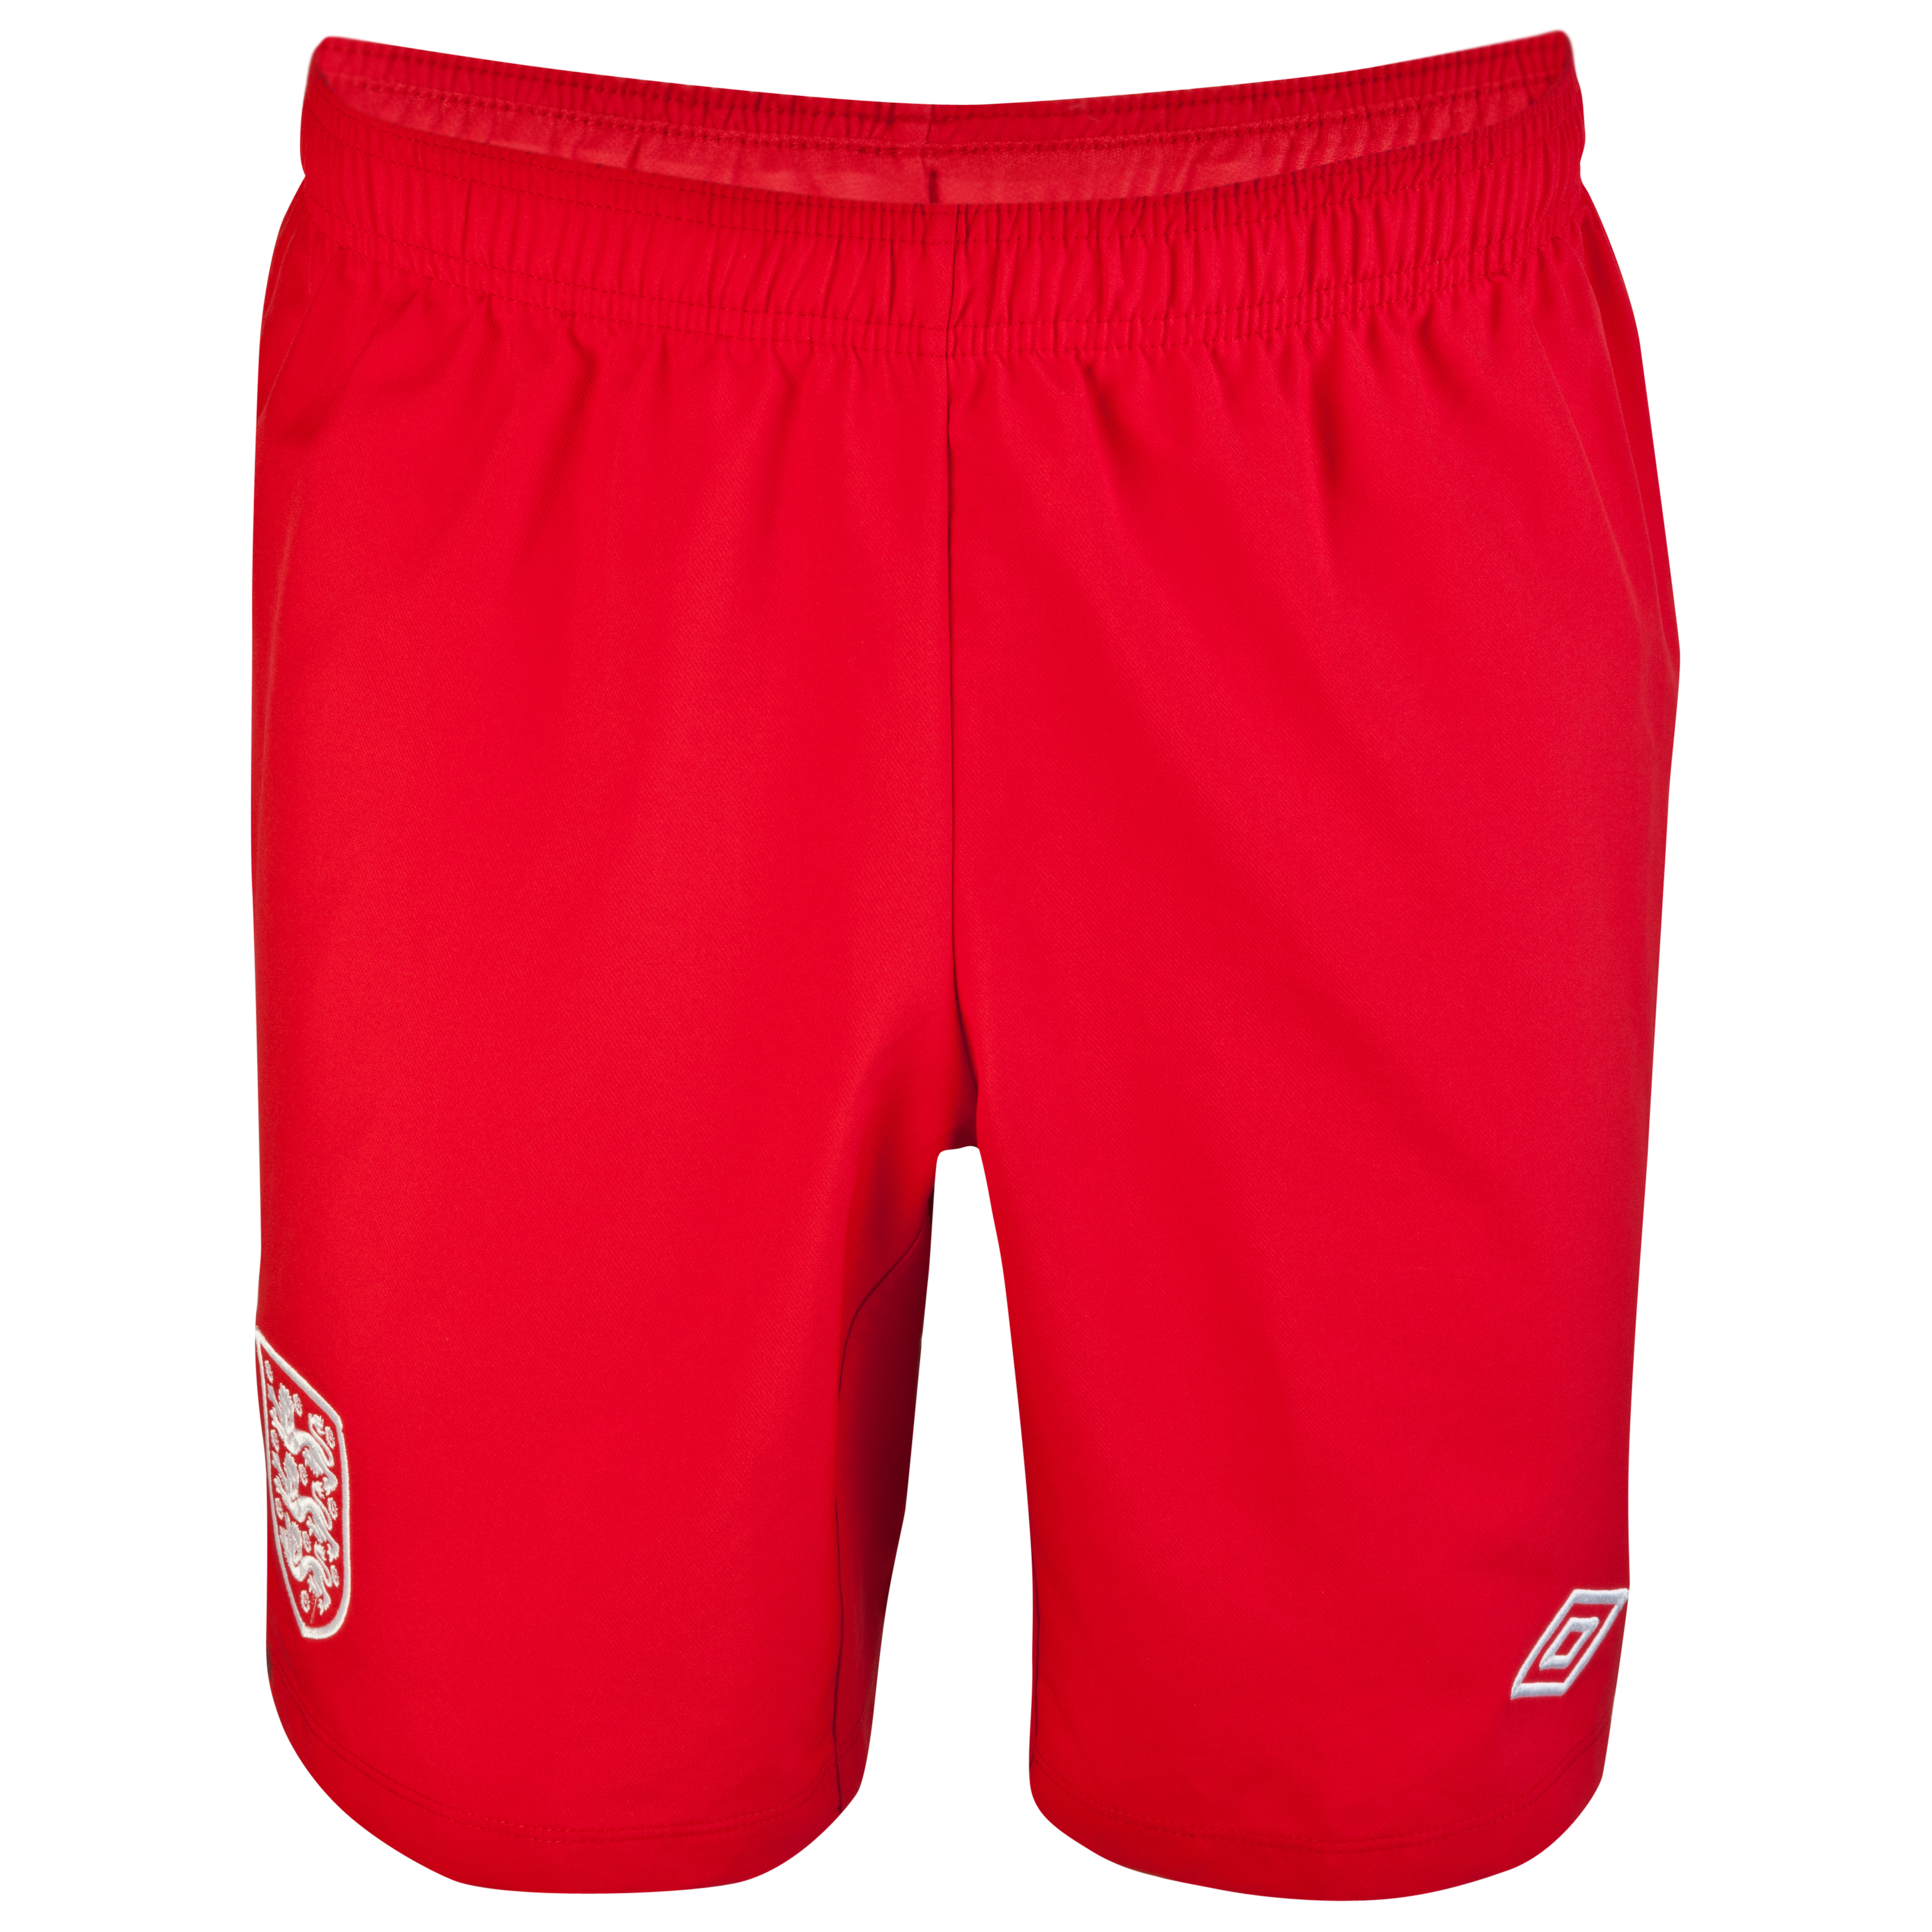 England Home Change Shorts 2012/13 - Boys